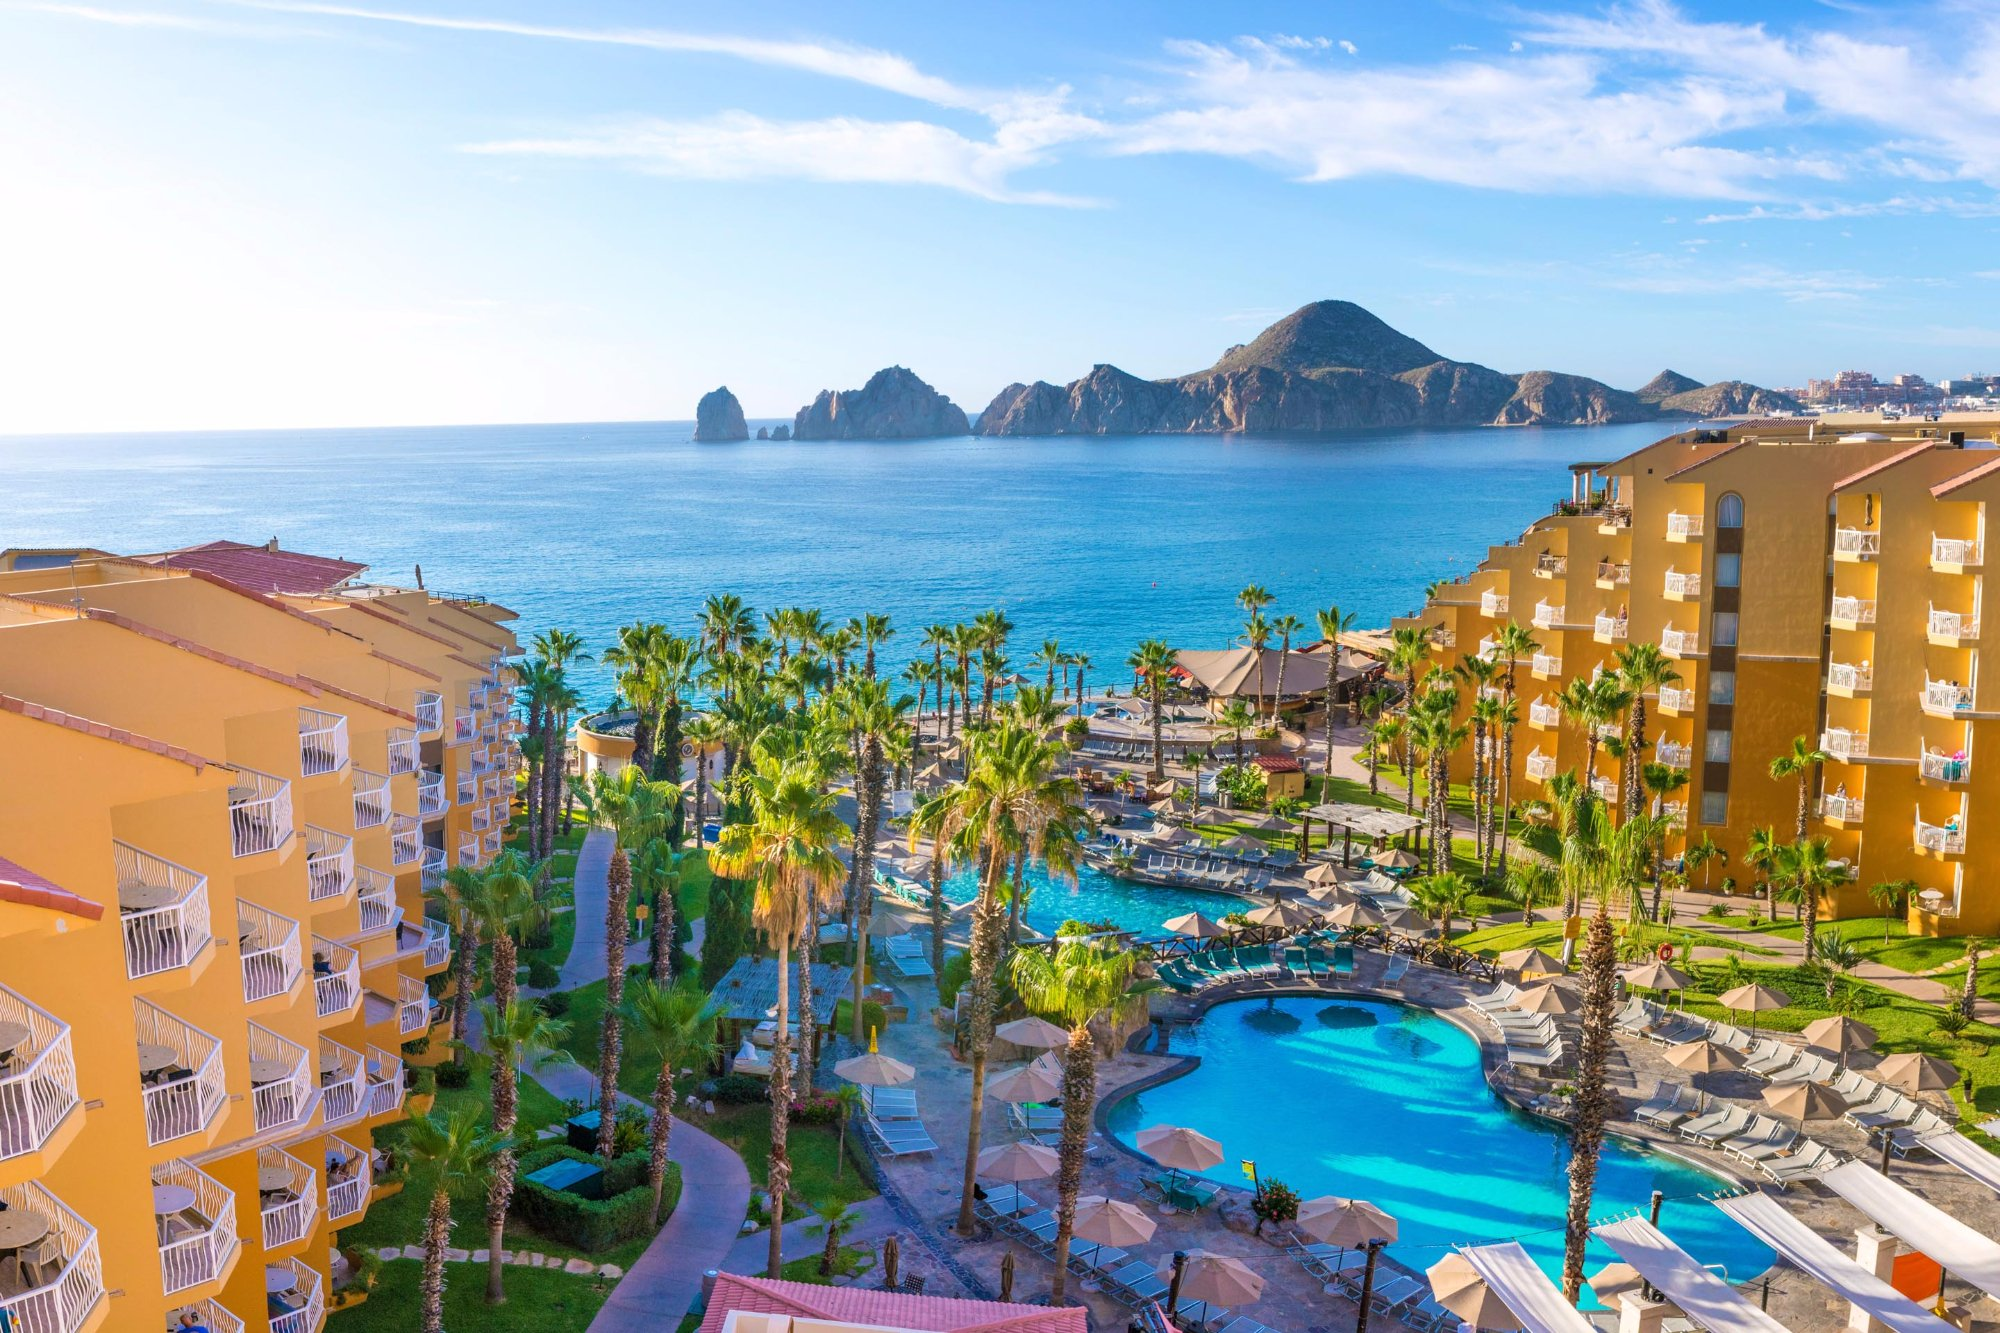 villa del palmar beach resort & spa los cabos - updated 2017